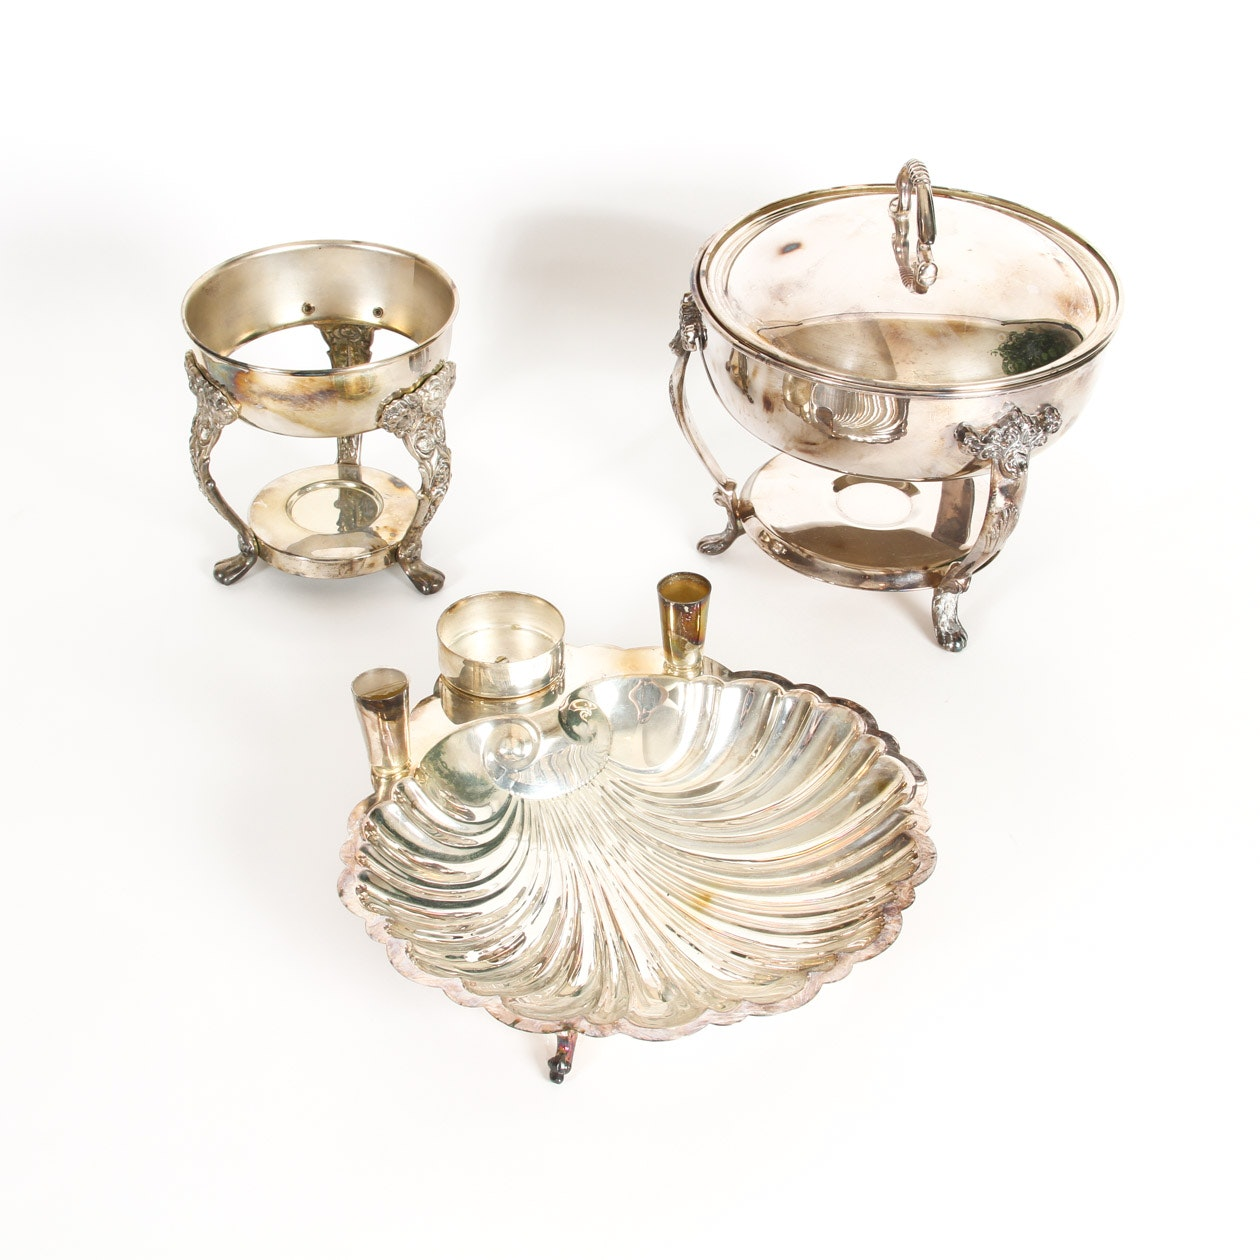 Collection of Silver Plated Serving Pieces